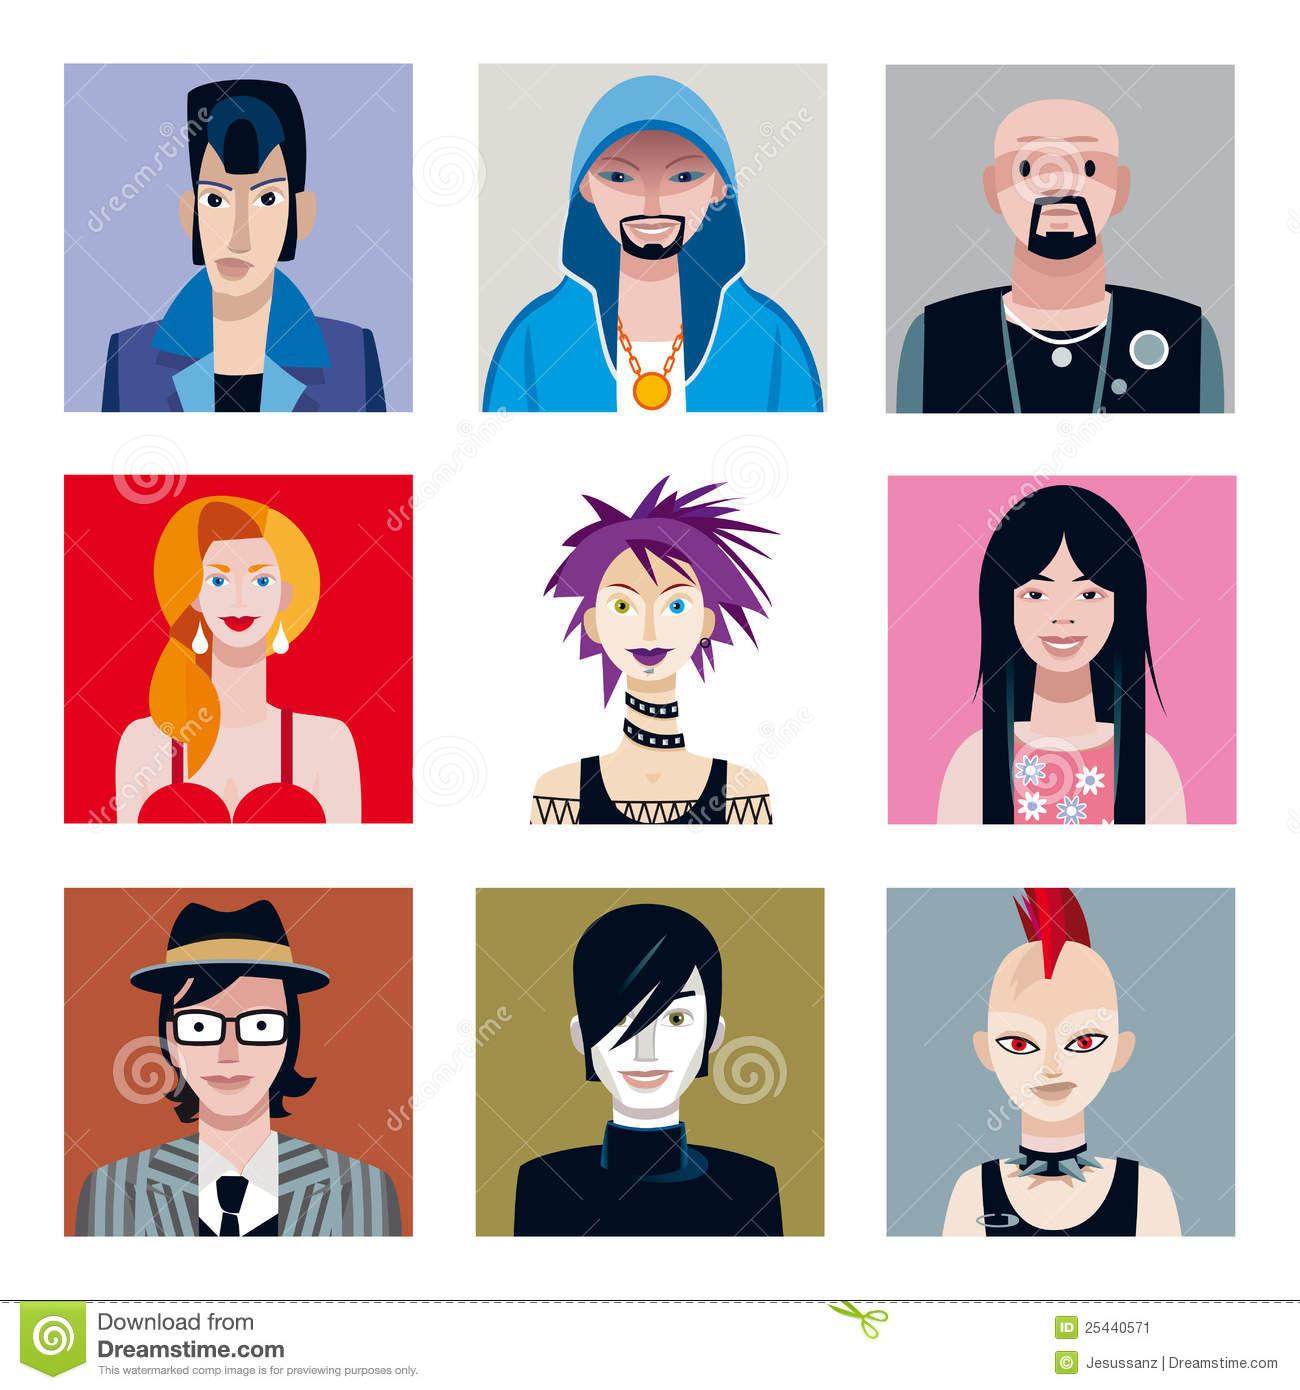 Avatar 4 2024: Urban Tribes Avatars Set Stock Vector. Image Of Teenager